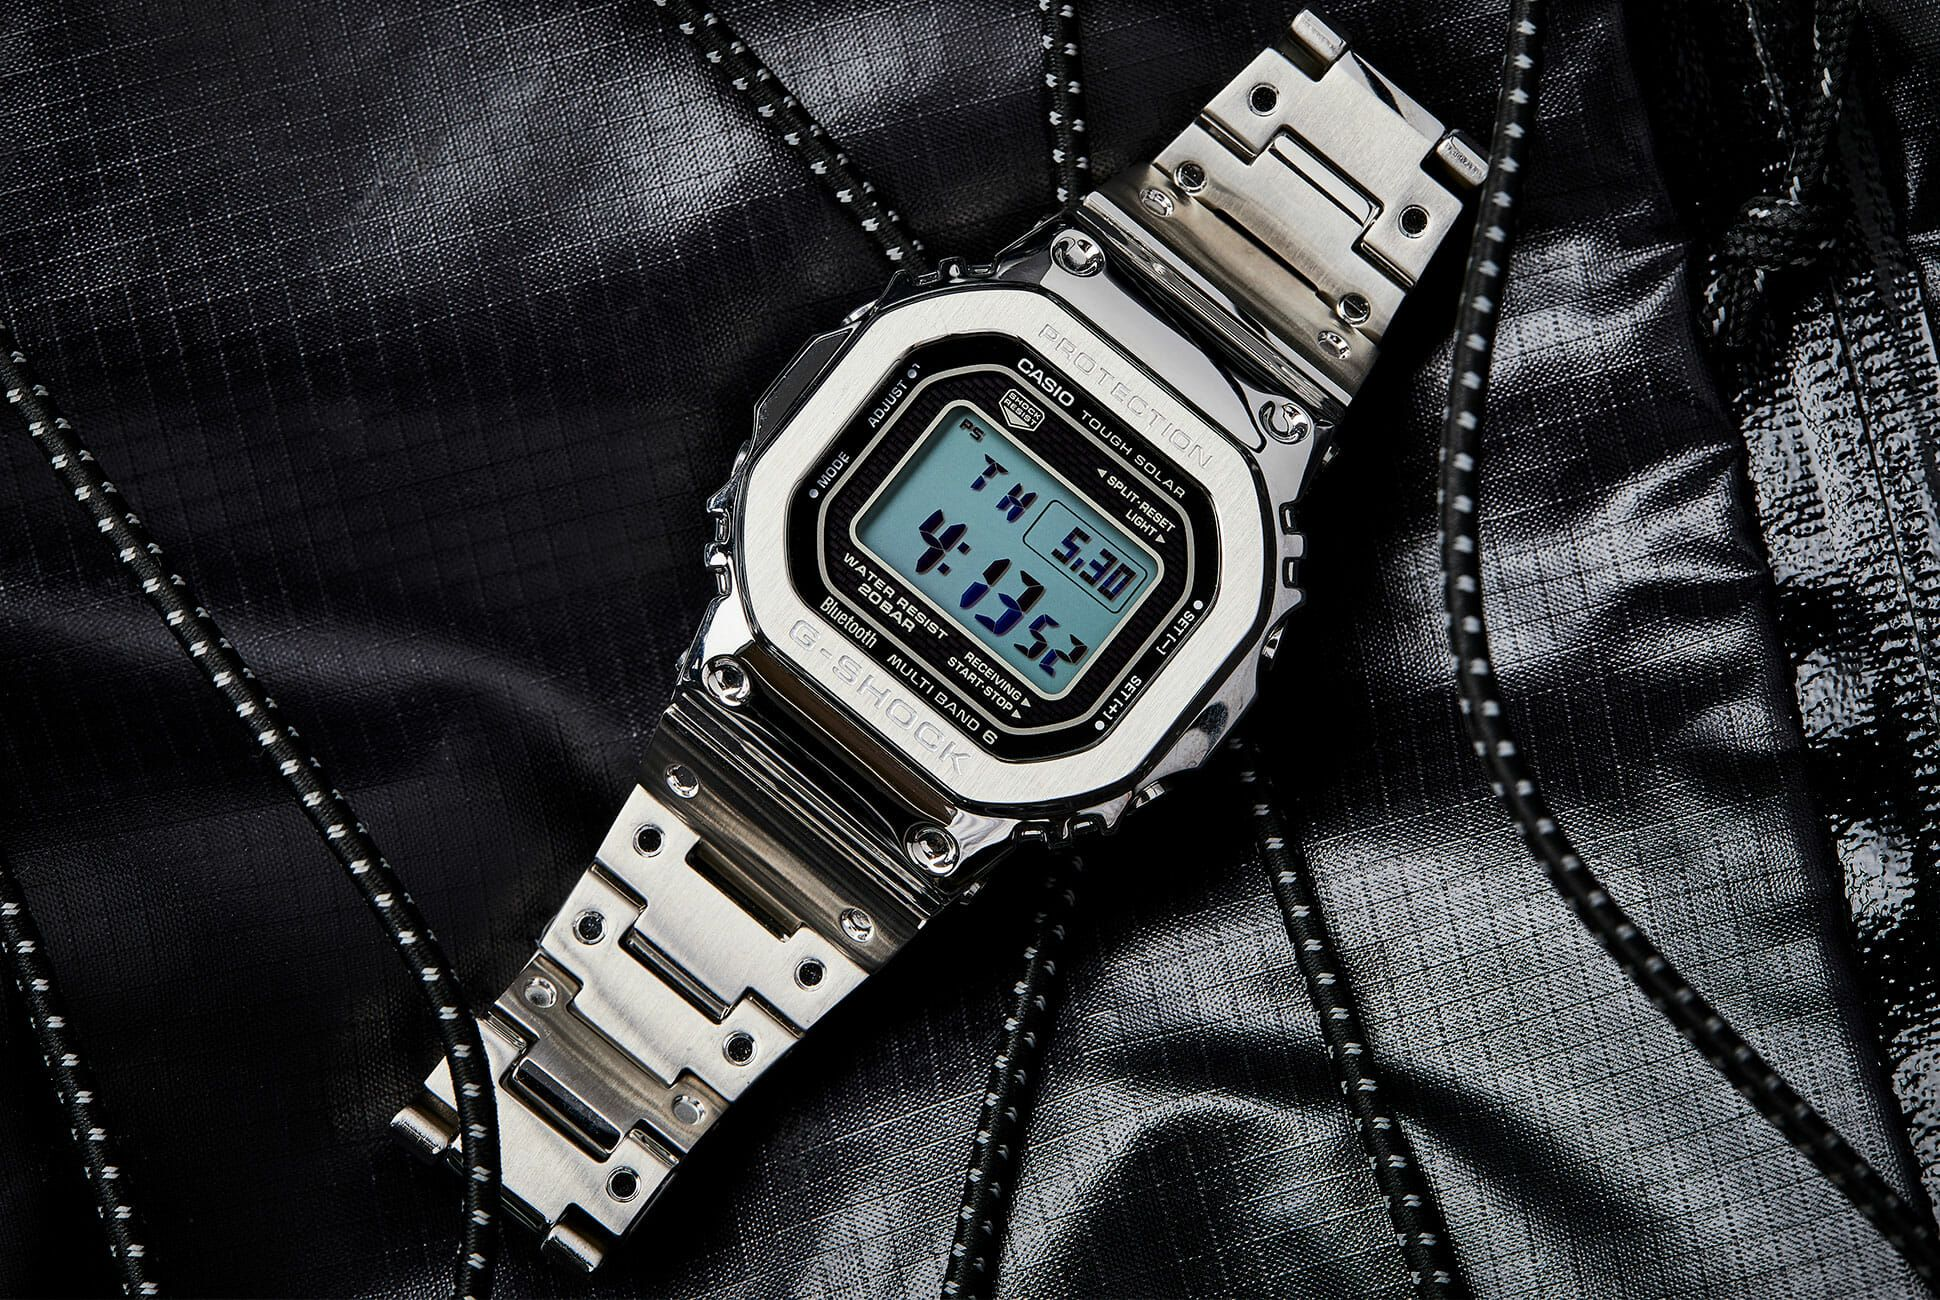 Casio-G-Shock-GMW-b5000-gear-patrol-full-05